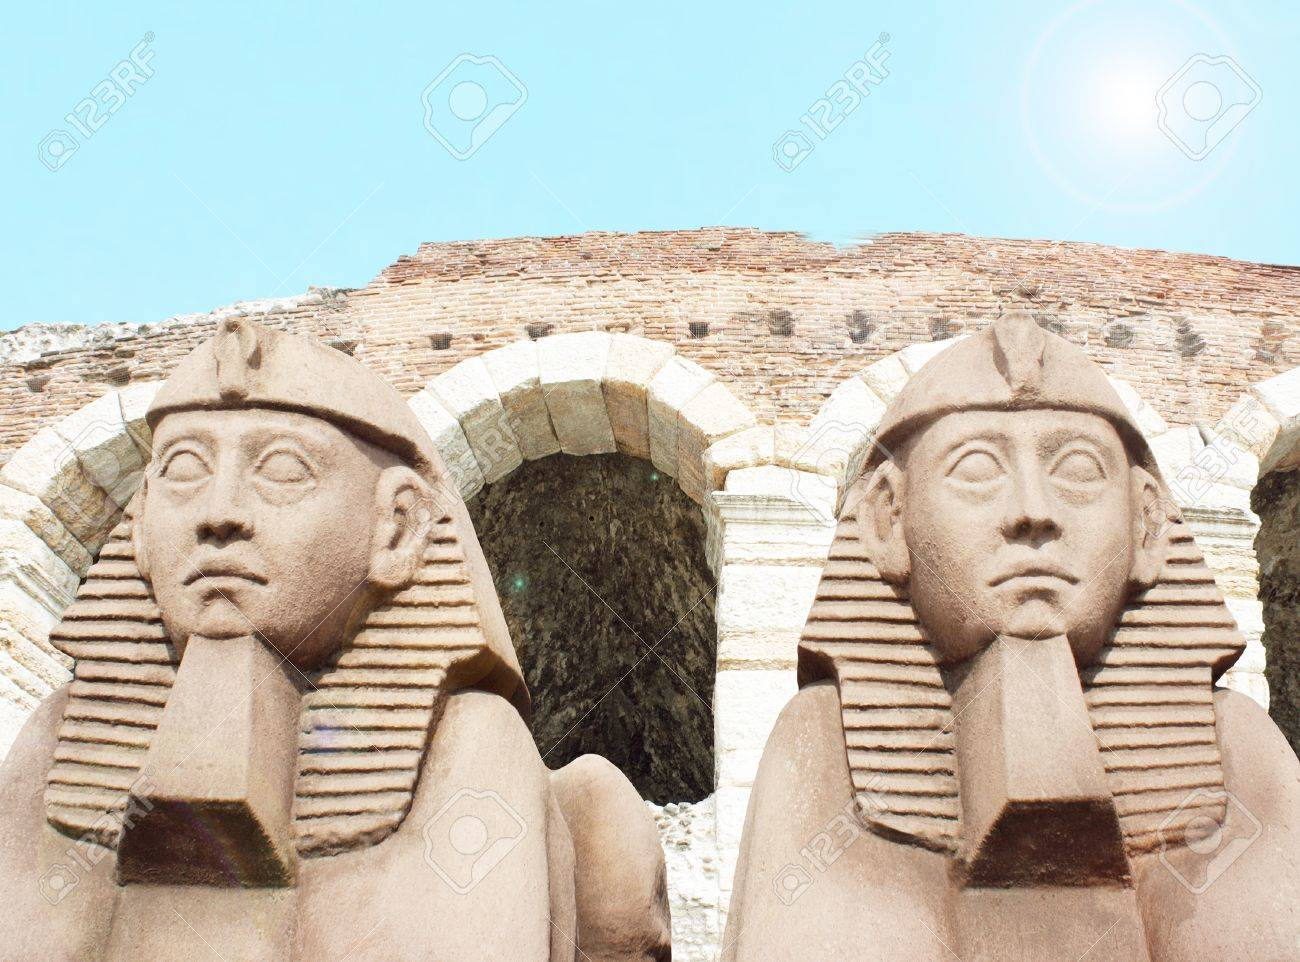 Detail of two sphinxes with the arena Verona and blue light sky on the background Stock Photo - 14185003